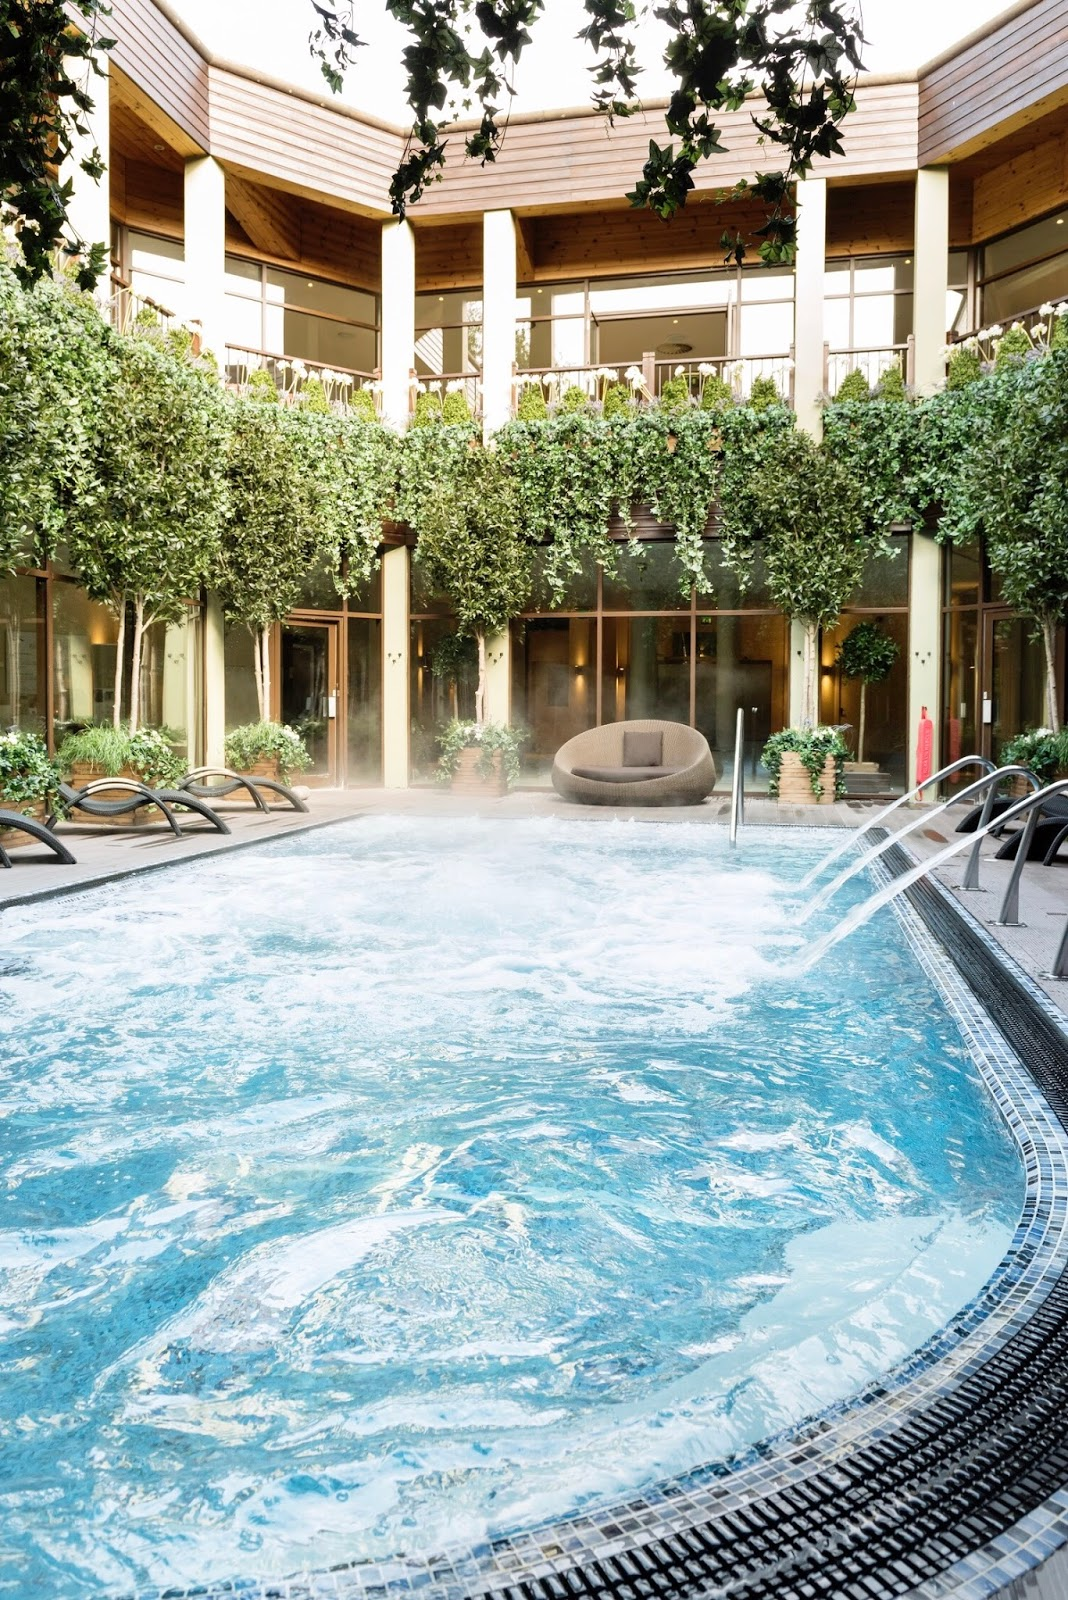 As A Mother S Day Treat I Arranged Spa For My Mum And At Aqua Sana Elveden Decided To Opt In The Week After Sunday Itself